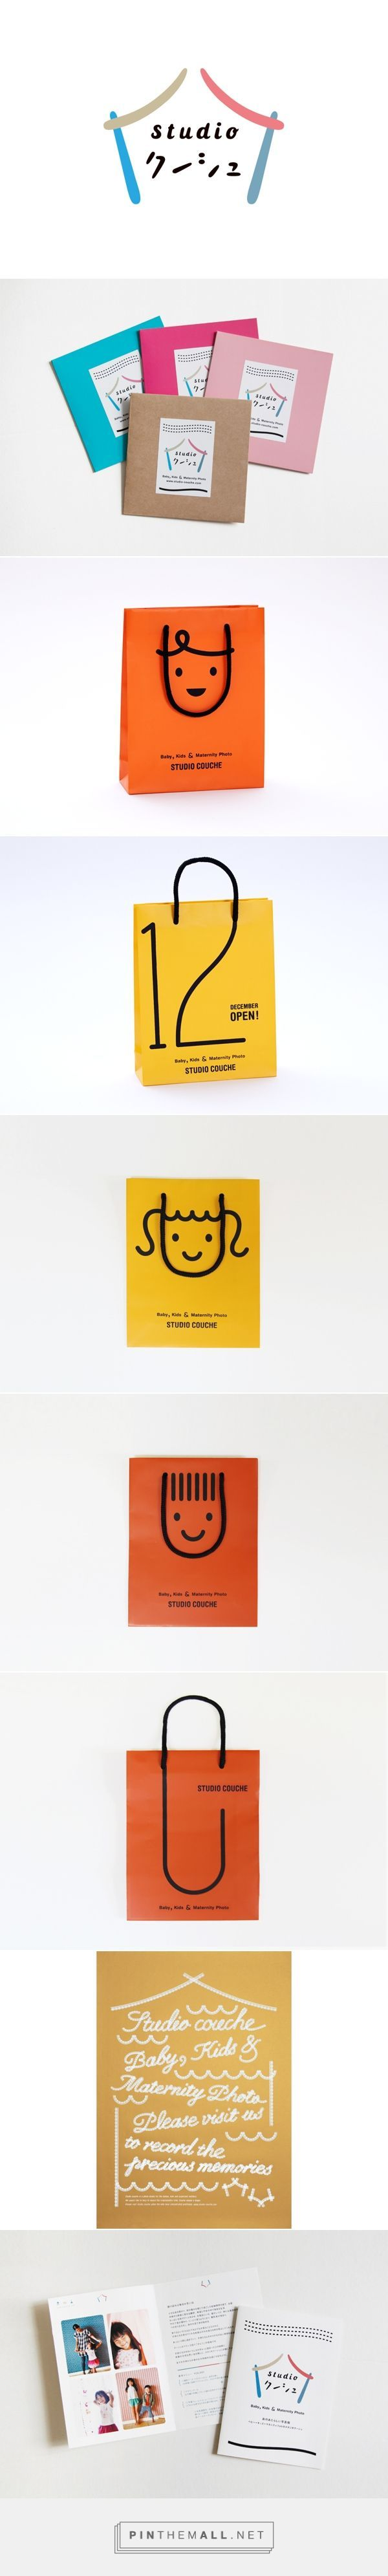 studio couche on Behance by Hiroko Sakai curated by Packaging Diva PD. Cute…